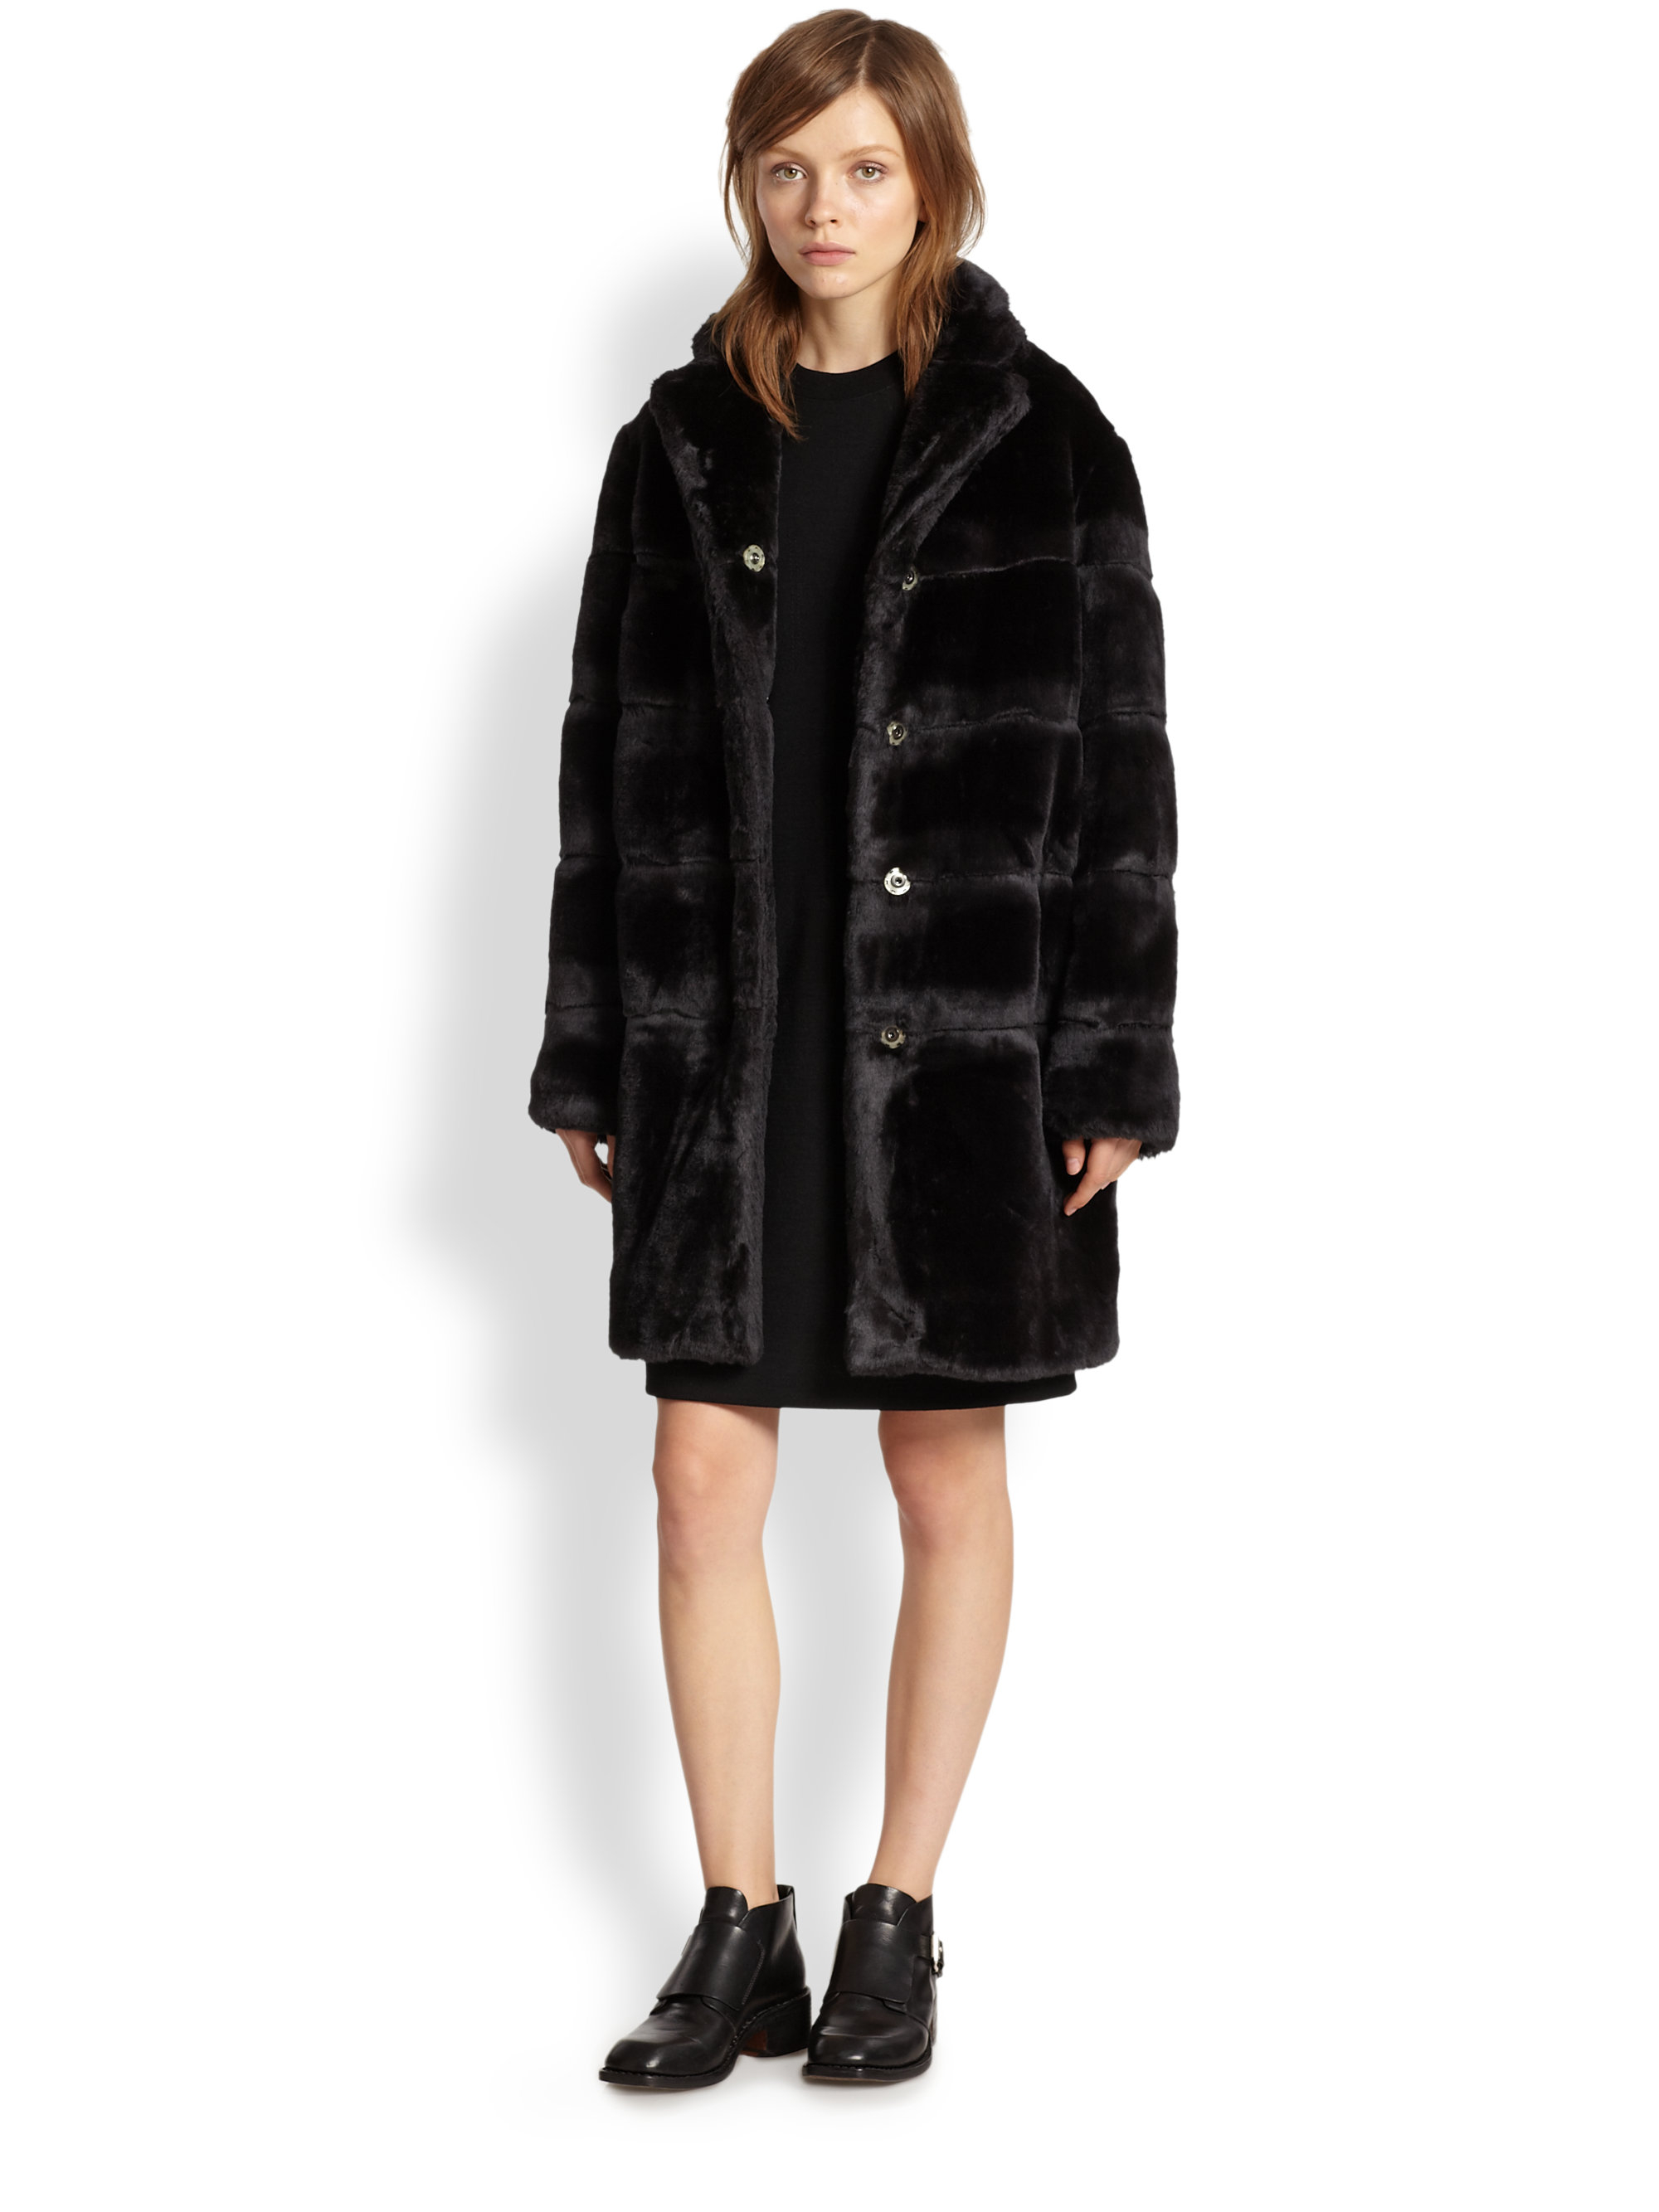 Lyst - Marc by marc jacobs Quilted Faux Fur Coat in Black : quilted fur coat - Adamdwight.com